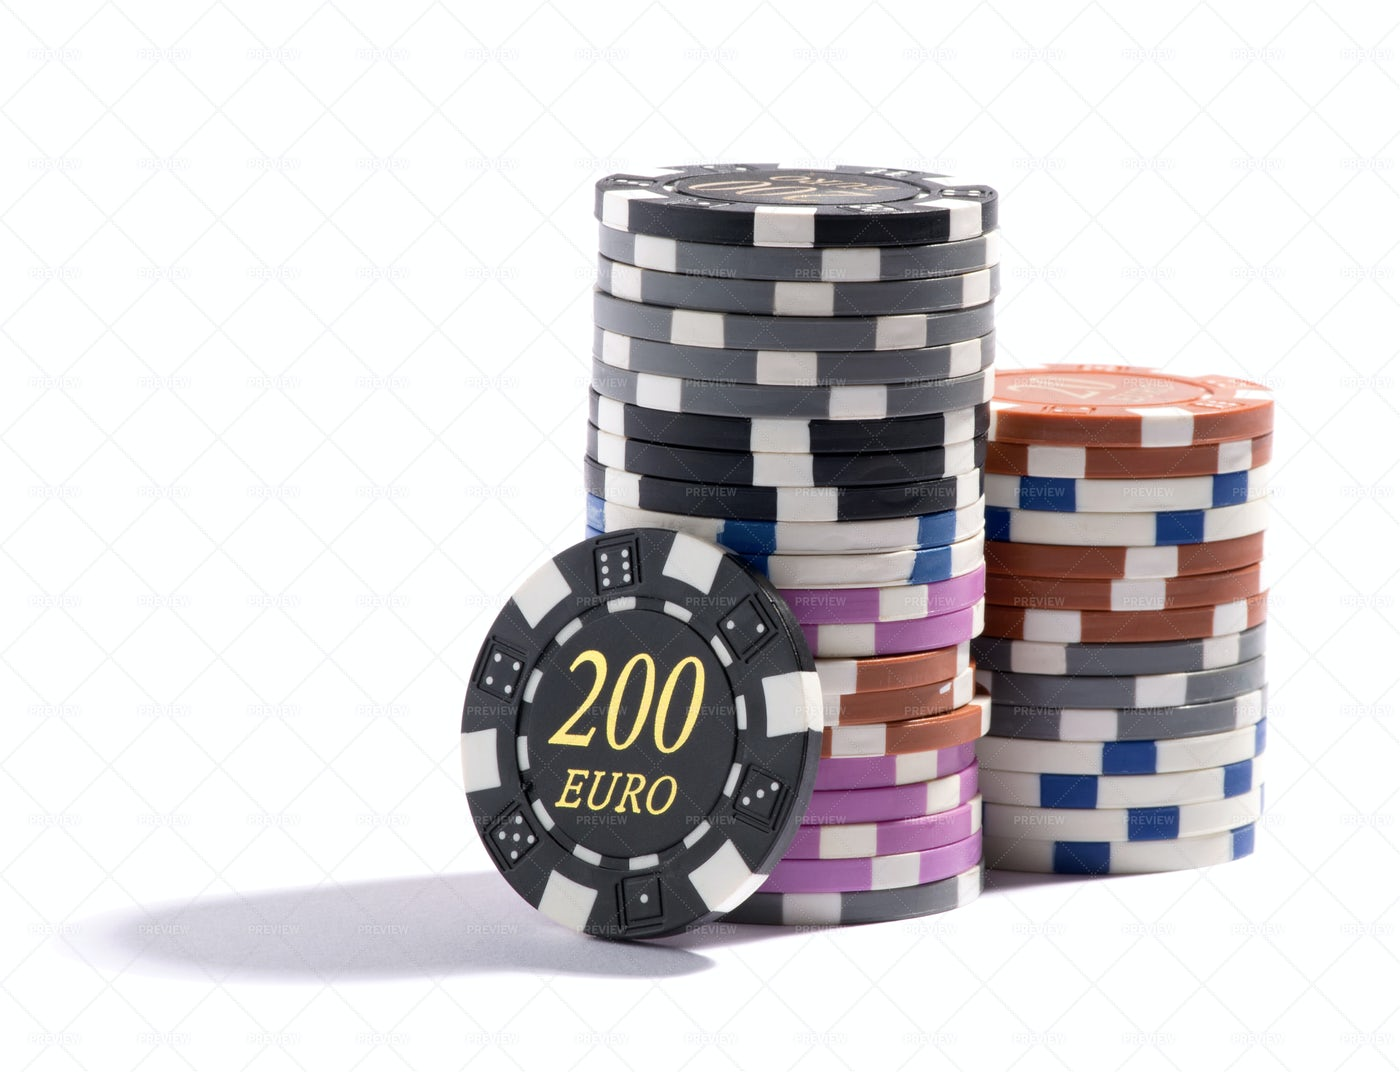 Stack Of Casino Chips: Stock Photos